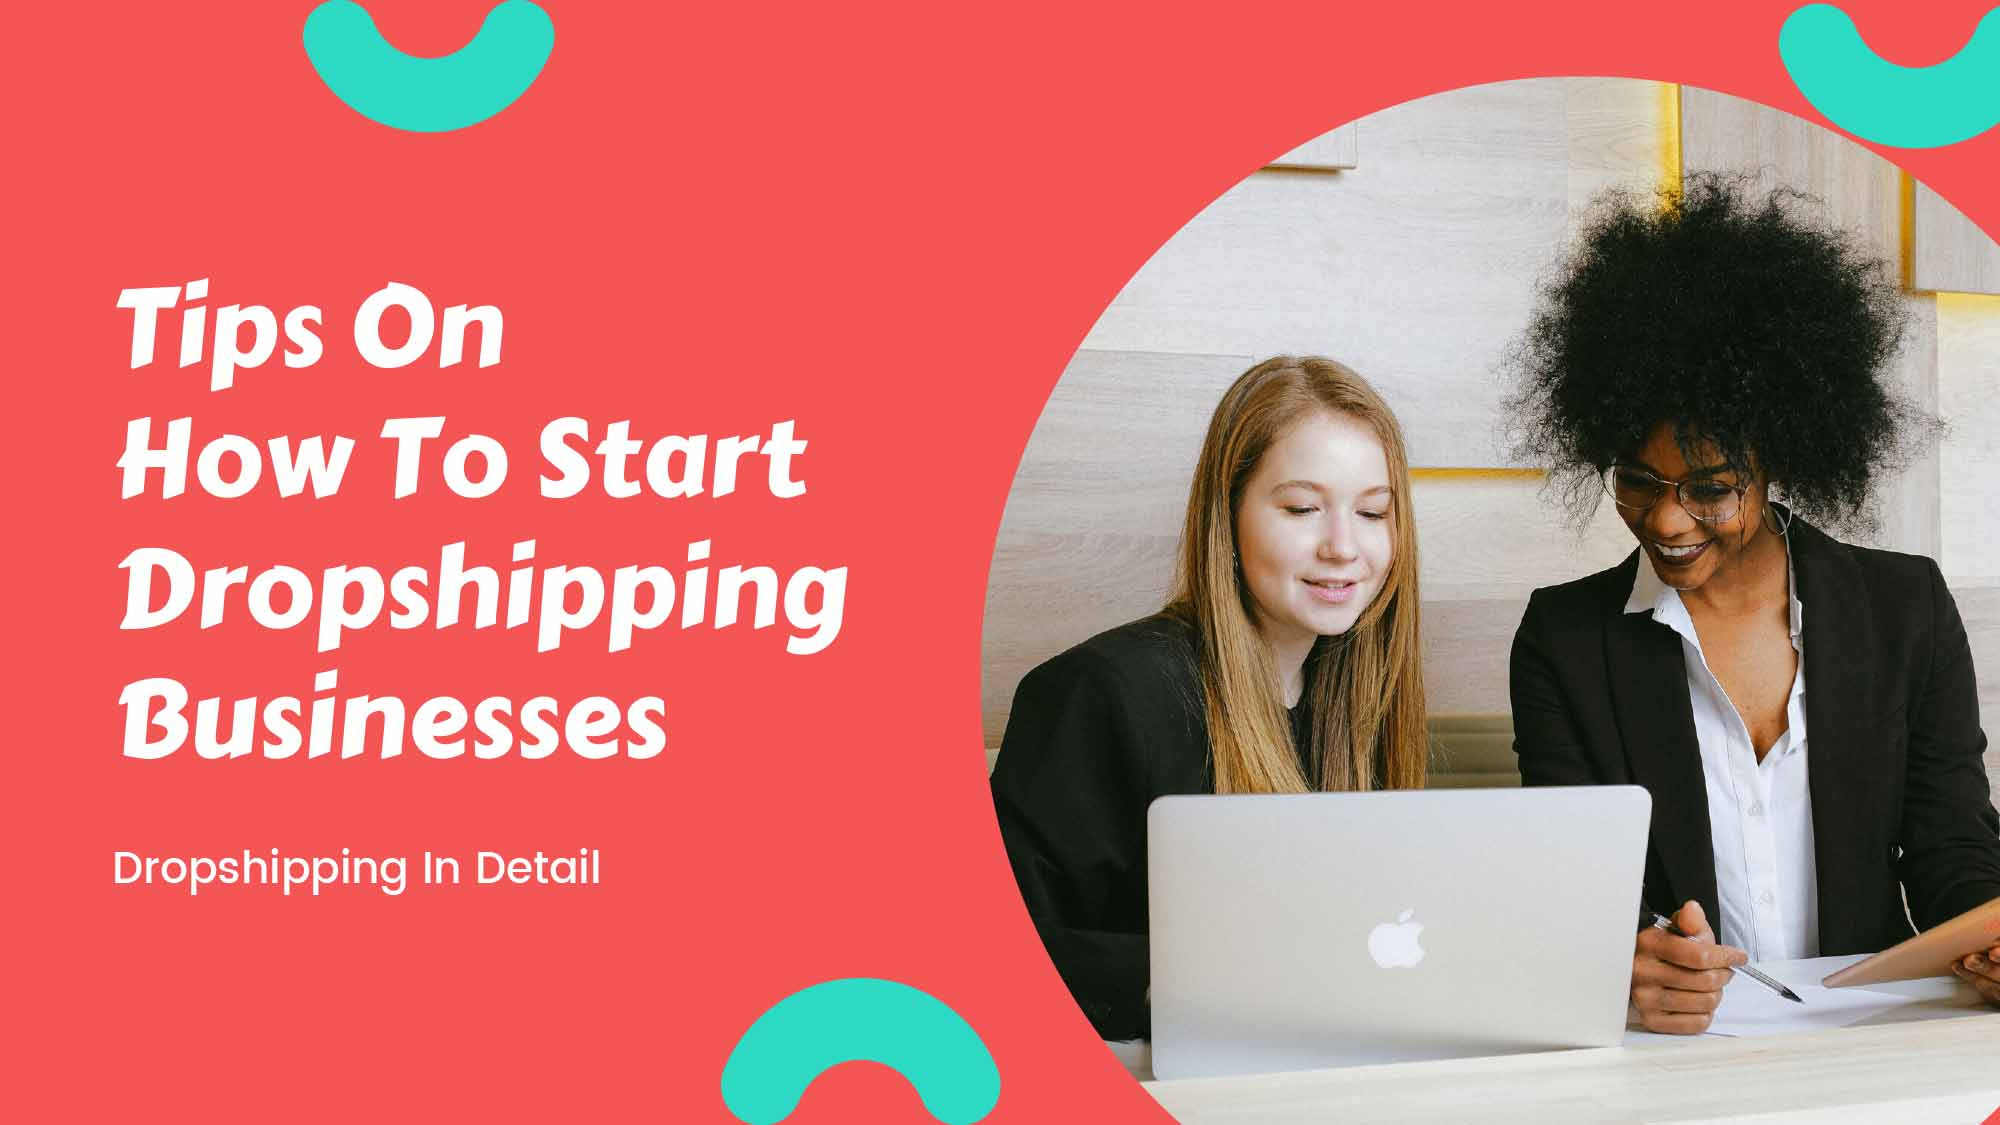 Dropshipping In Detail: How To Get Started With Dropshipping Businesses